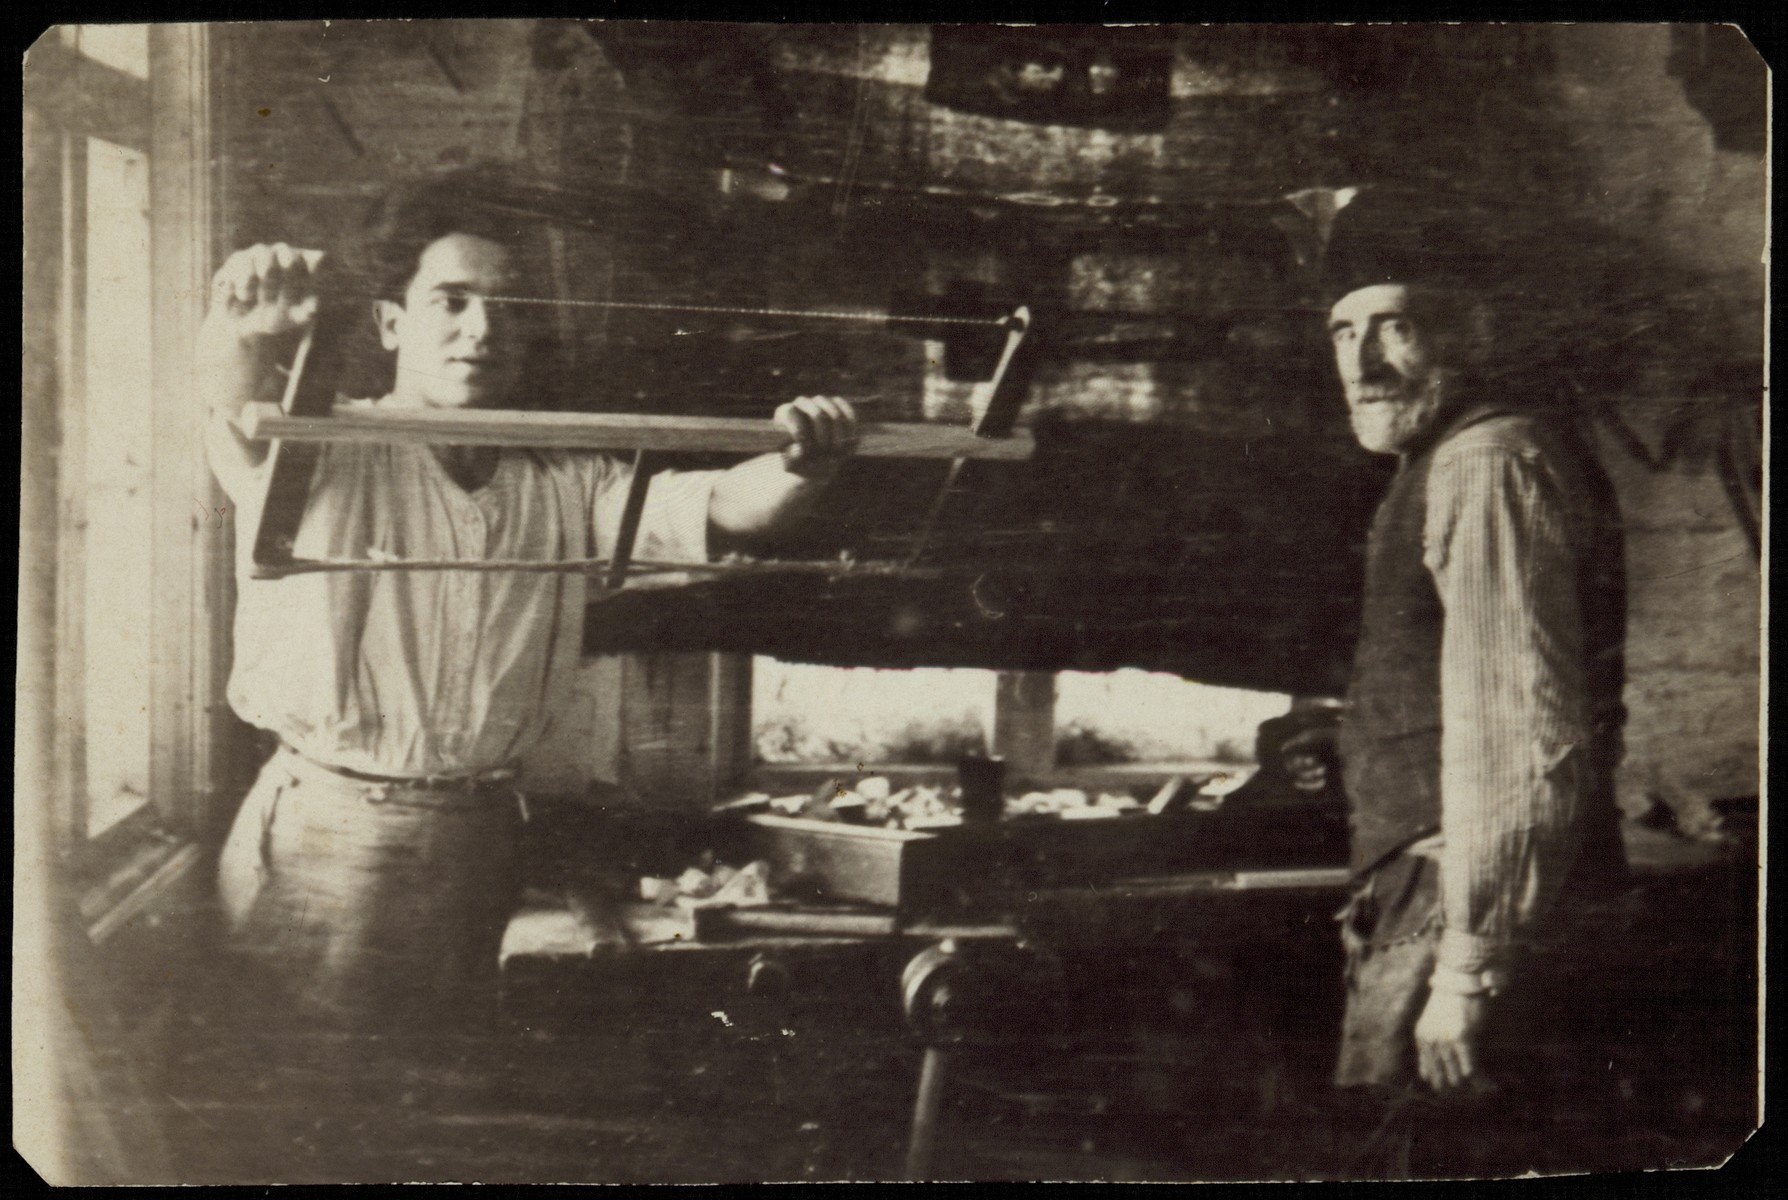 Gedalia Cofnas and his son, Pessah, work in their carpentry shop.   Gedalia was murdered by the Germans during the September 1941 mass killing action in Eisiskes, and Pessah survived in Russia.